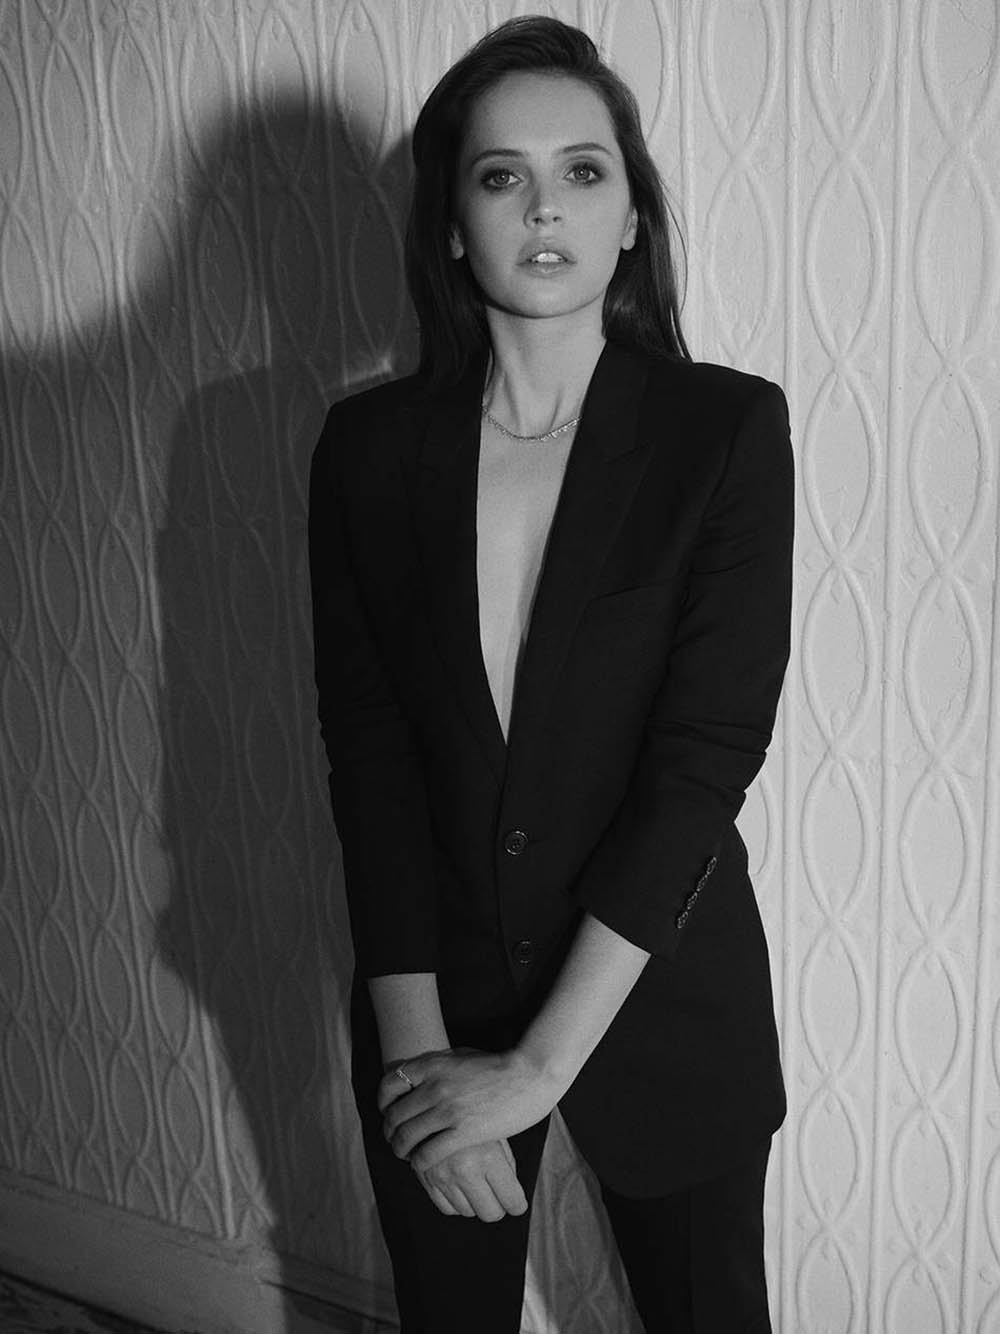 Felicity Jones covers Porter Edit December 7th, 2018 by Matthew Sprout